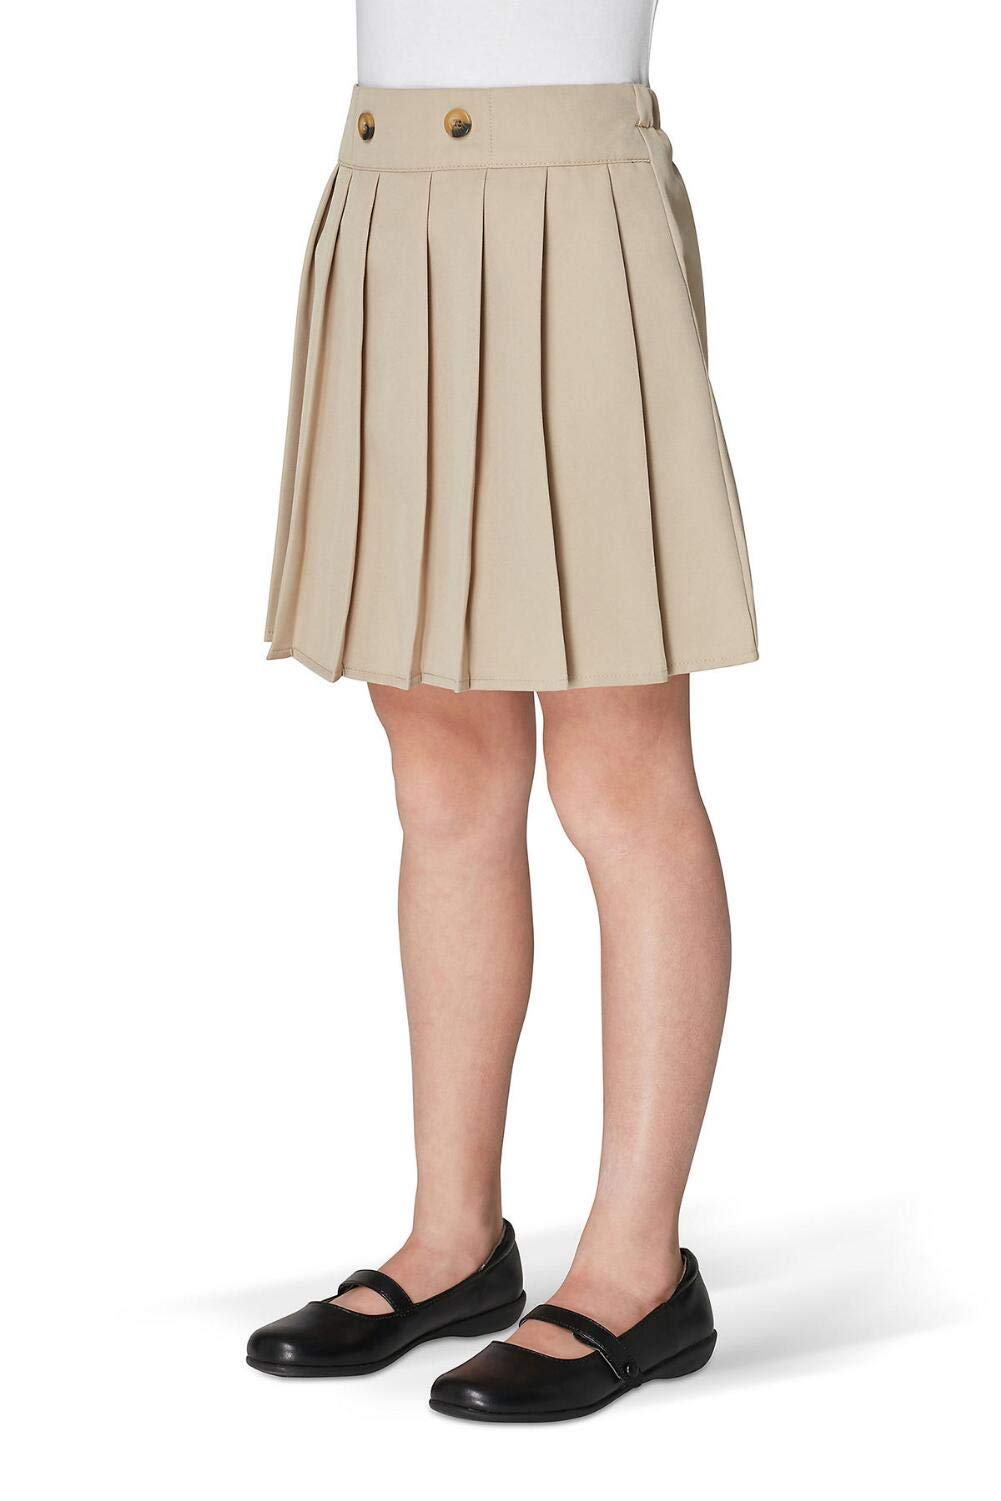 French Toast Girls' Little Front Button Pleated Scooter, Khaki, 4 by French Toast